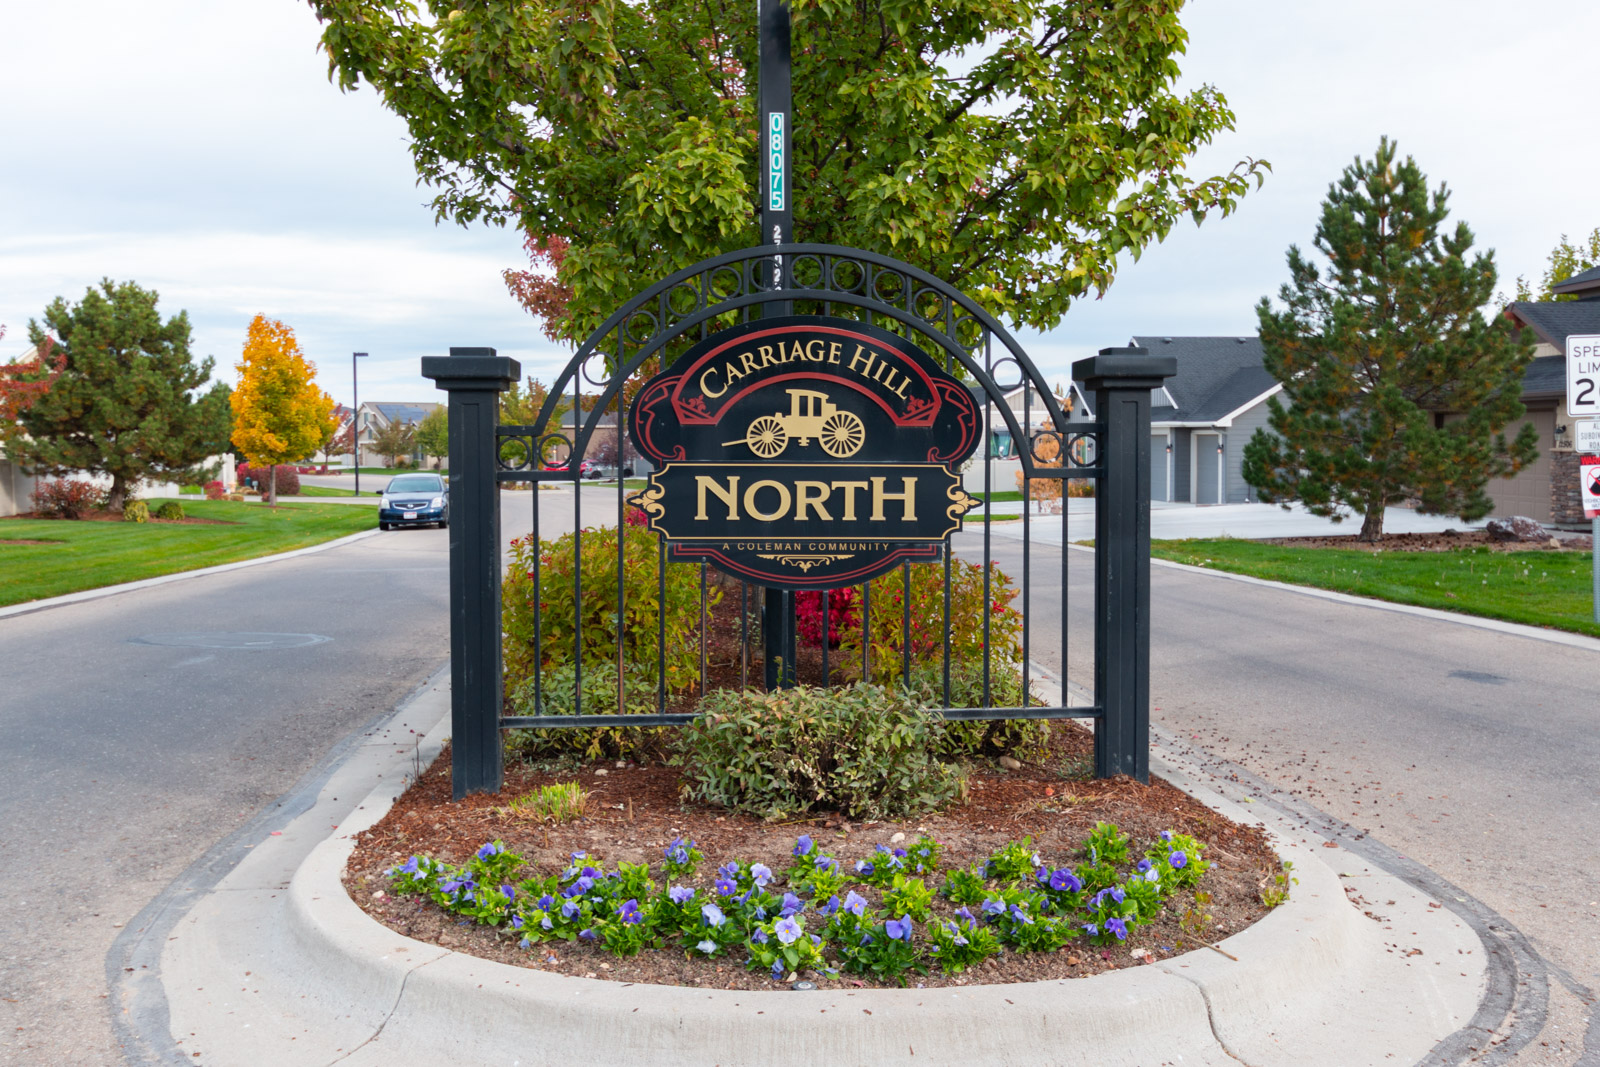 Carriage Hill North Subdivision